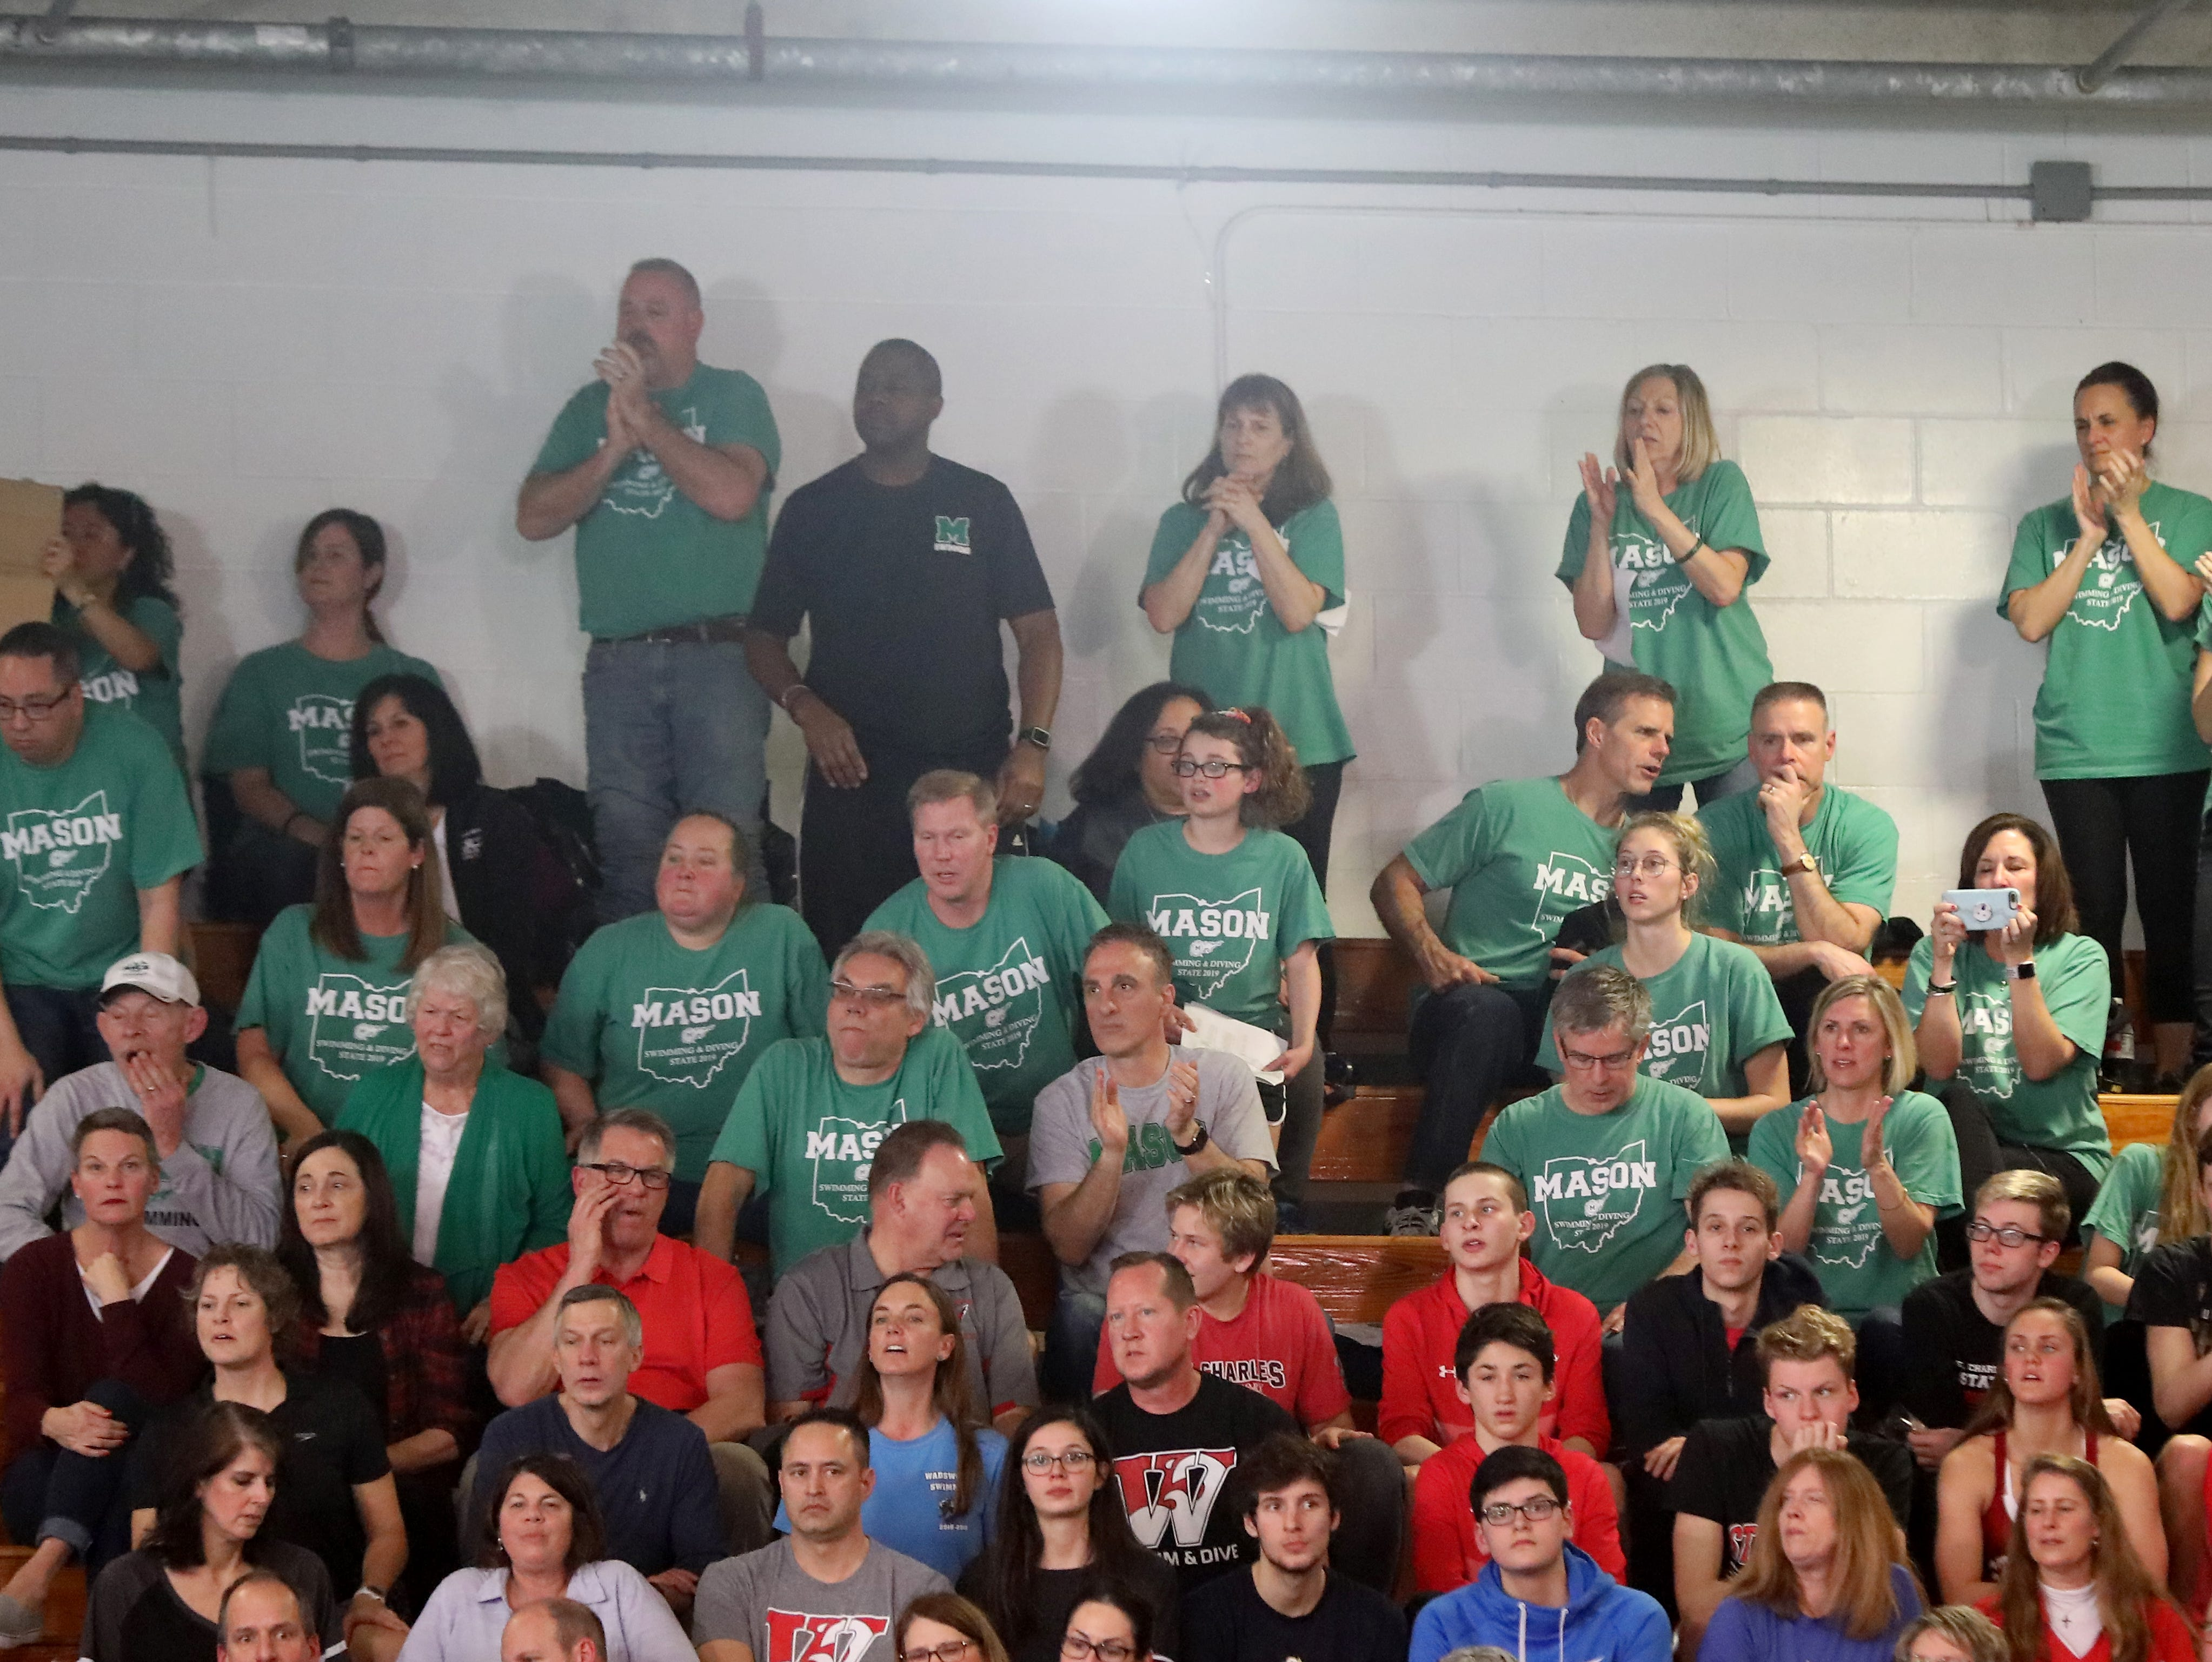 Mason fans cheer on the Comets at the OHSAA state swimming and diving championships in Canton Ohio, Friday, Feb. 23, 2019.